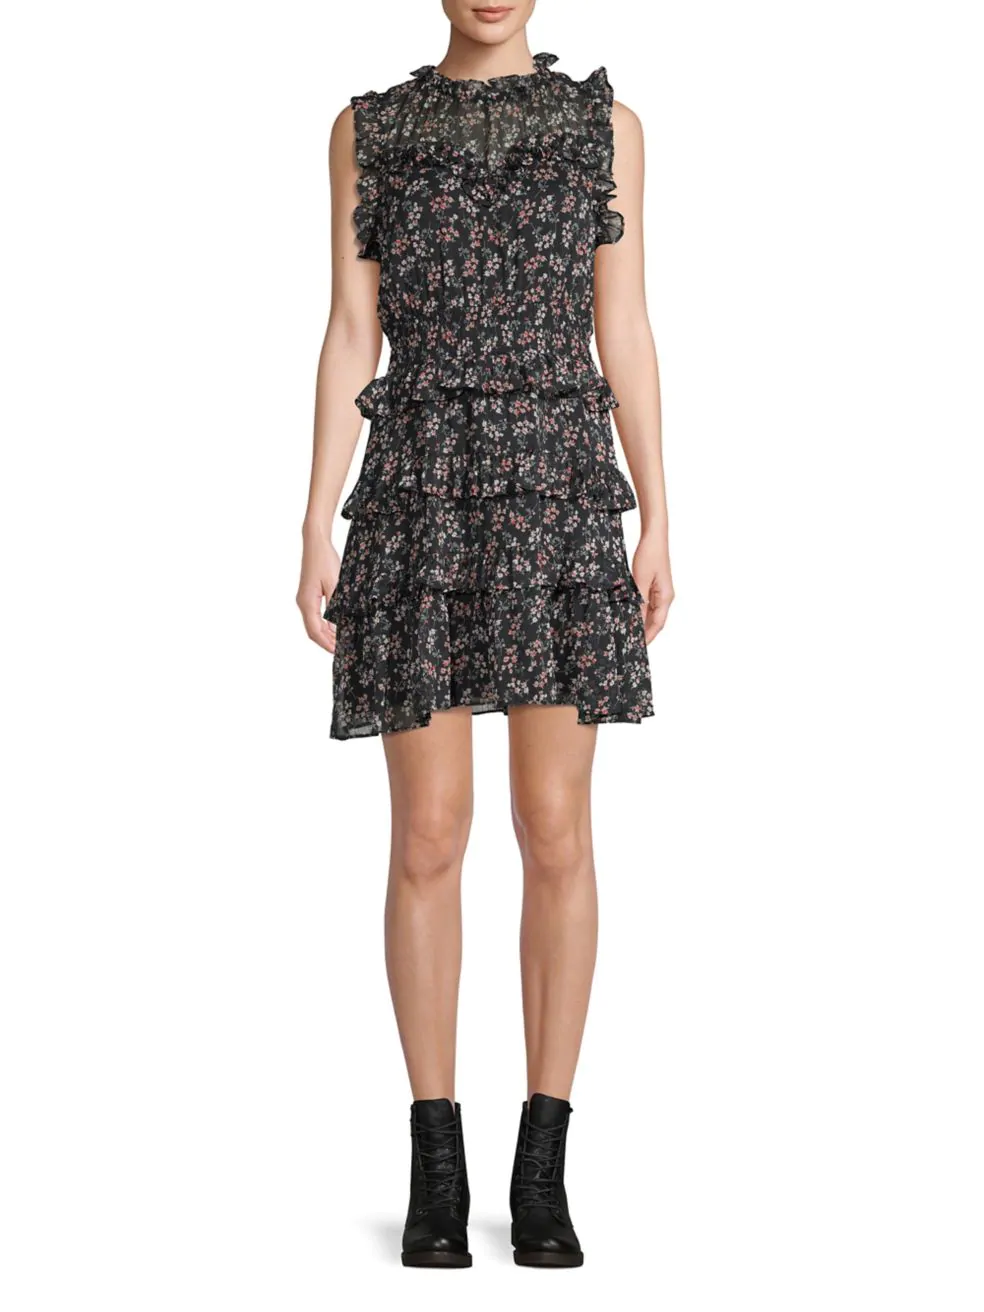 DESIGN LAB LORD & TAYLOR. Floral A-Line Dress.